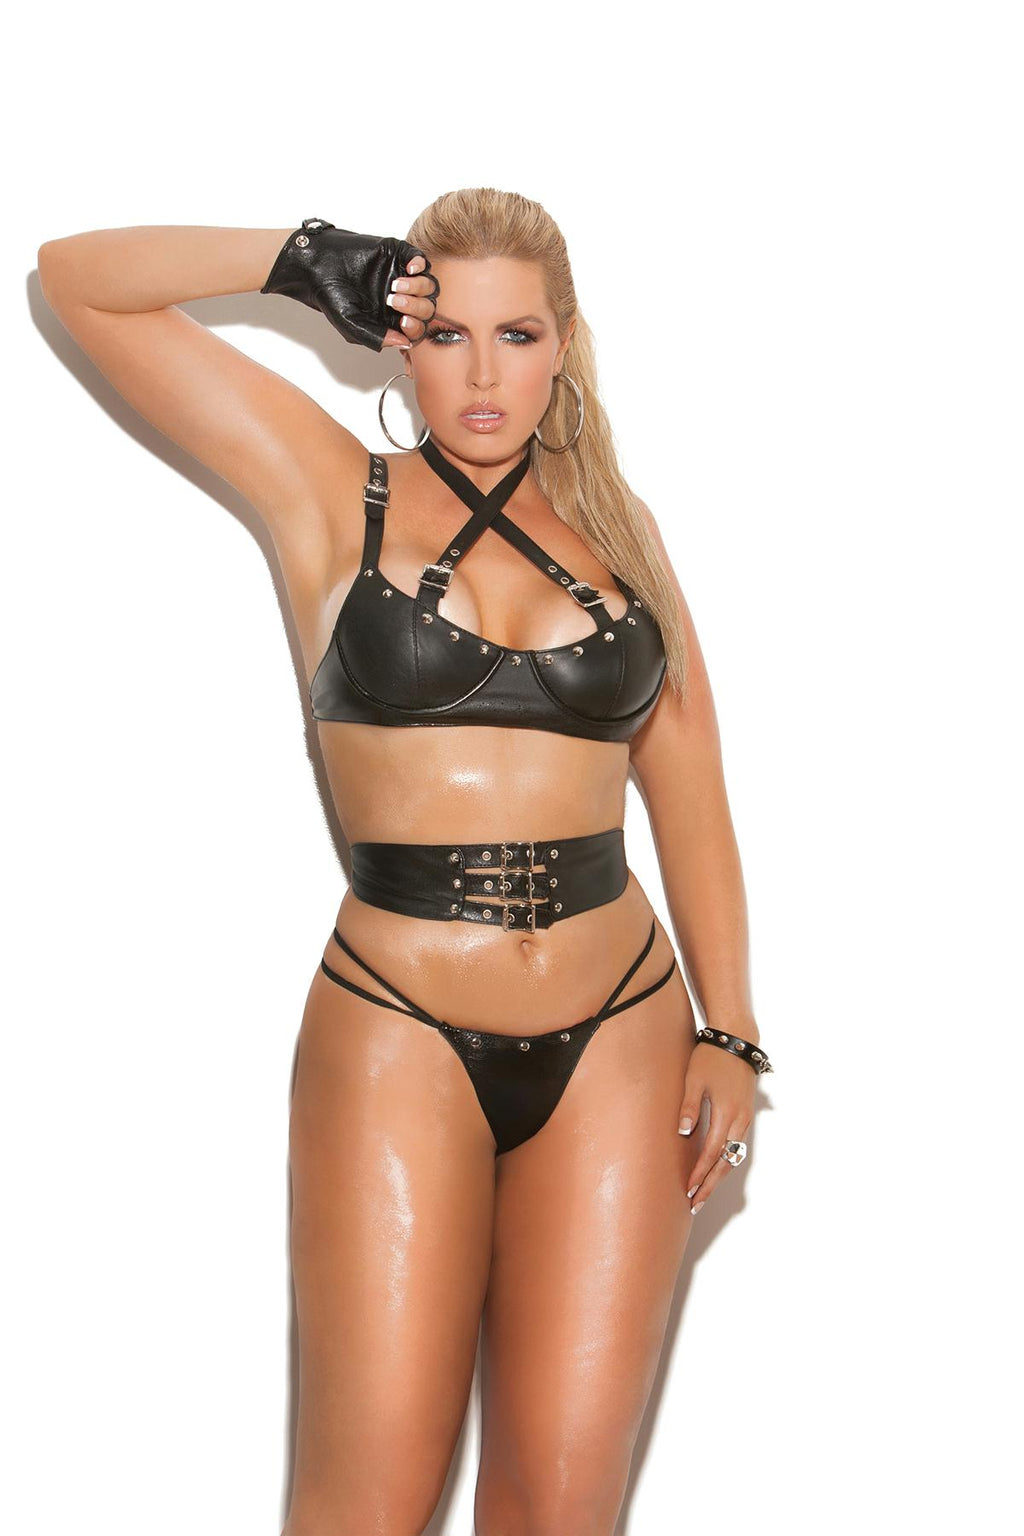 Leather underwire bra with criss cross straps with buckle detail, adjustable straps and back closure. Waist cincher with adjustable buckle detail. Matching panty included. *Available Boxed